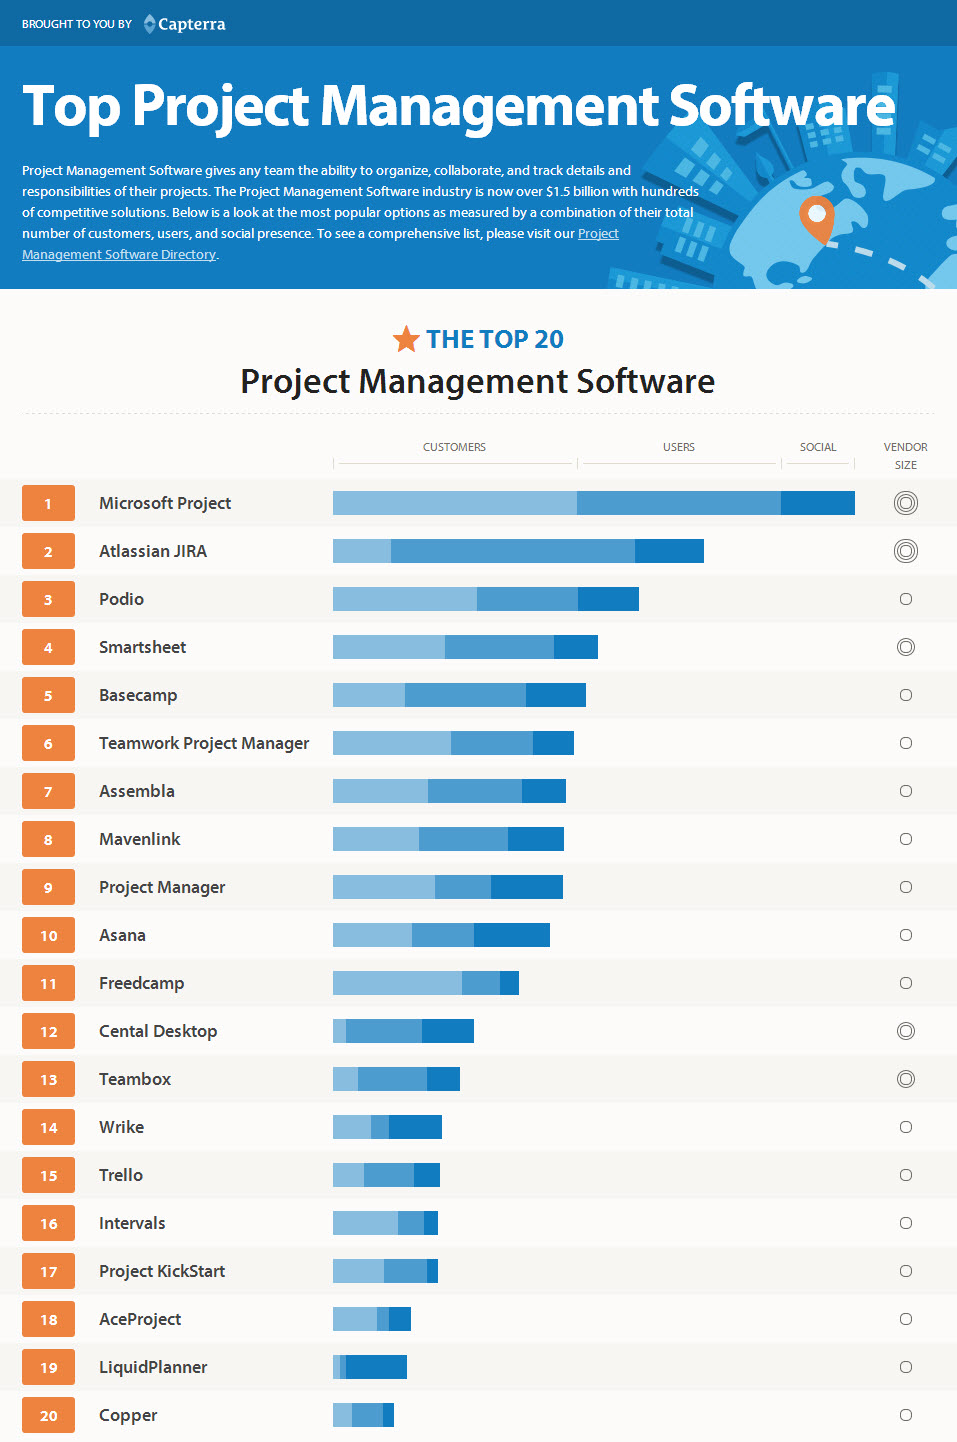 Capterra Publishes Top 20 Project Management Software